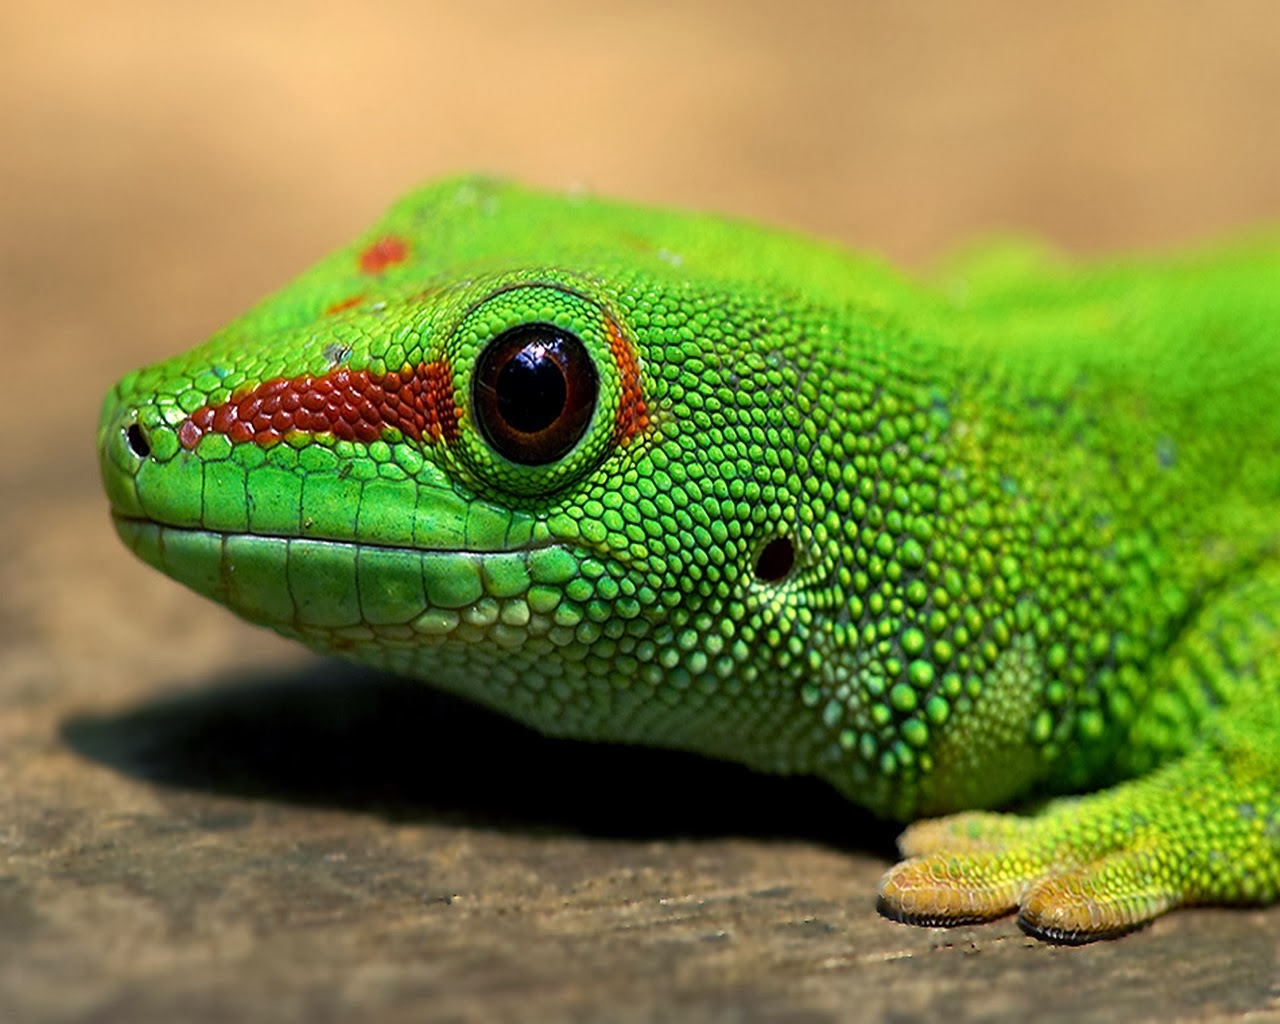 Gecko HD Wallpapers - HD Wallpapers Blog